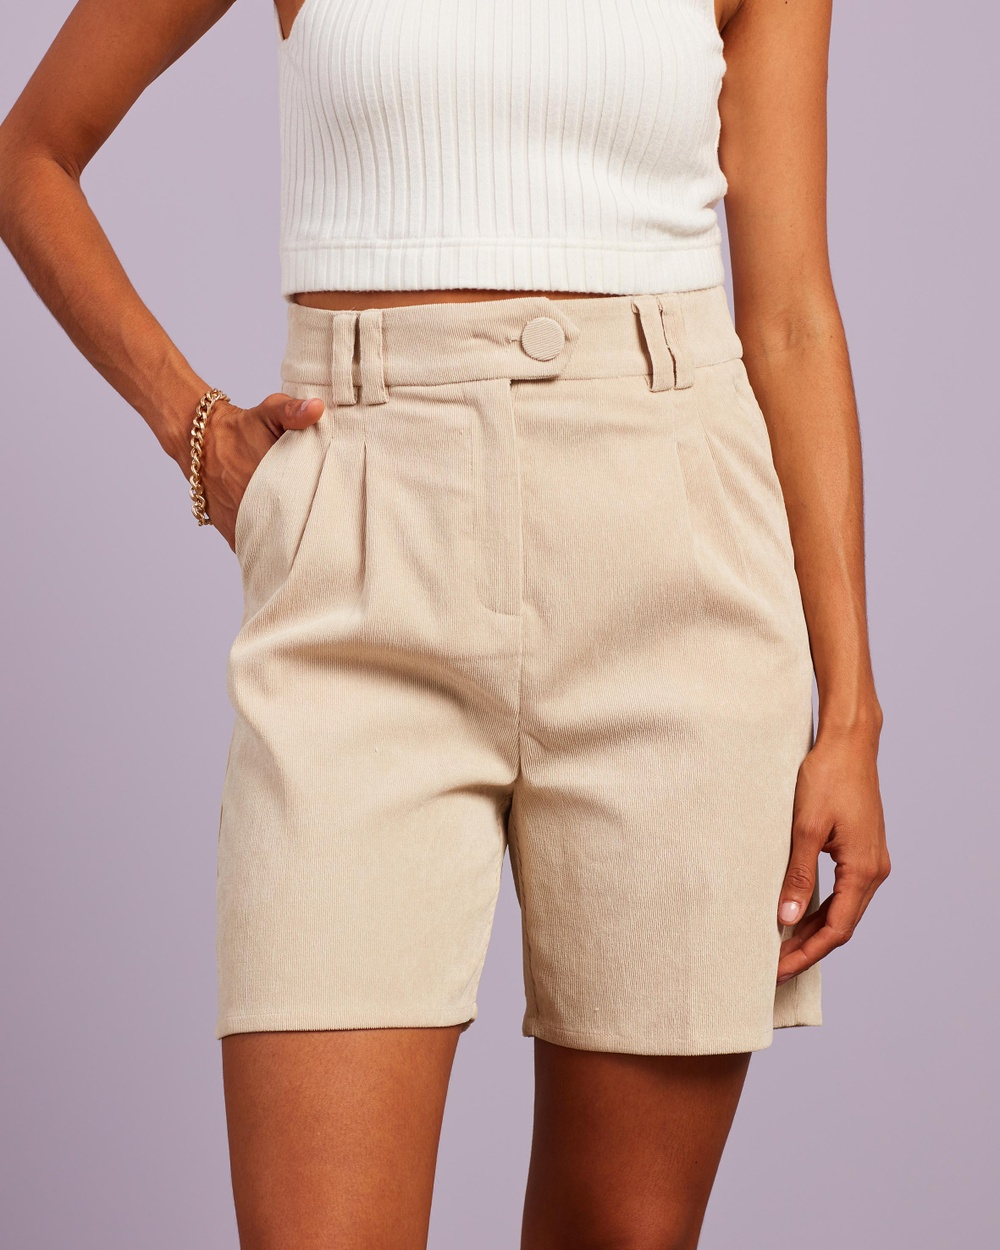 4th & Reckless Anderson Shorts High-Waisted Cream